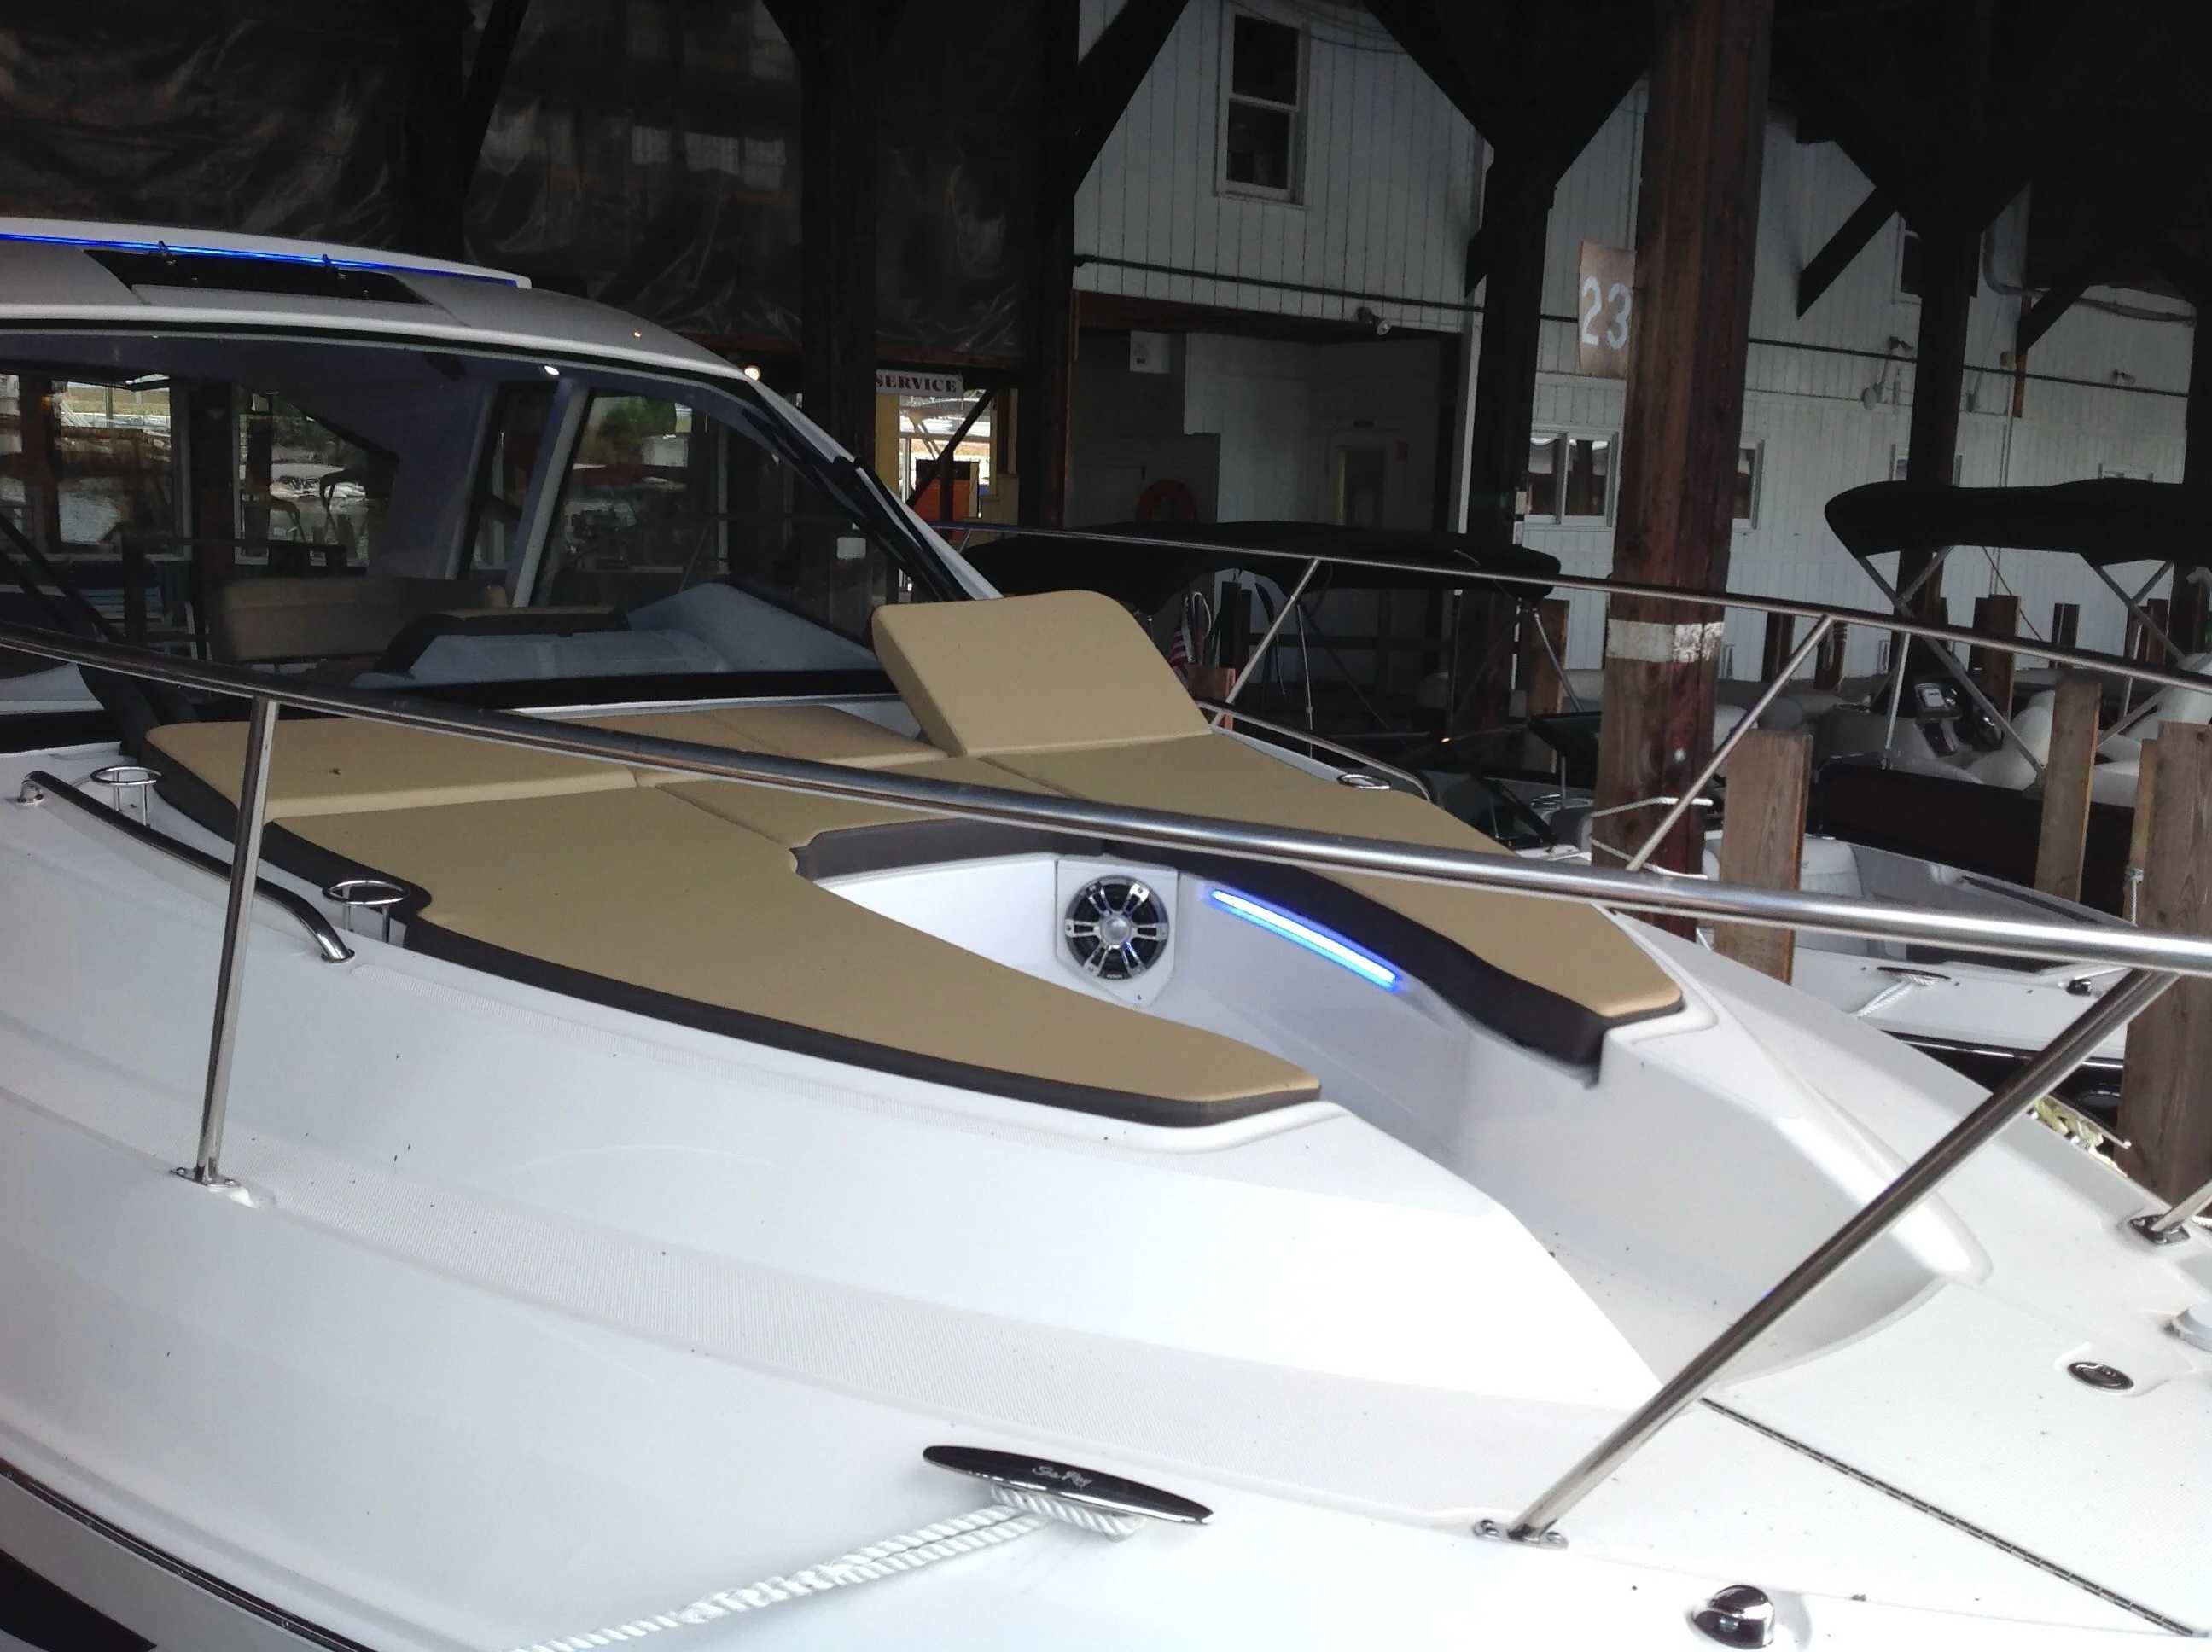 2020 Sea Ray boat for sale, model of the boat is 350 Sundancer Coupe & Image # 8 of 31